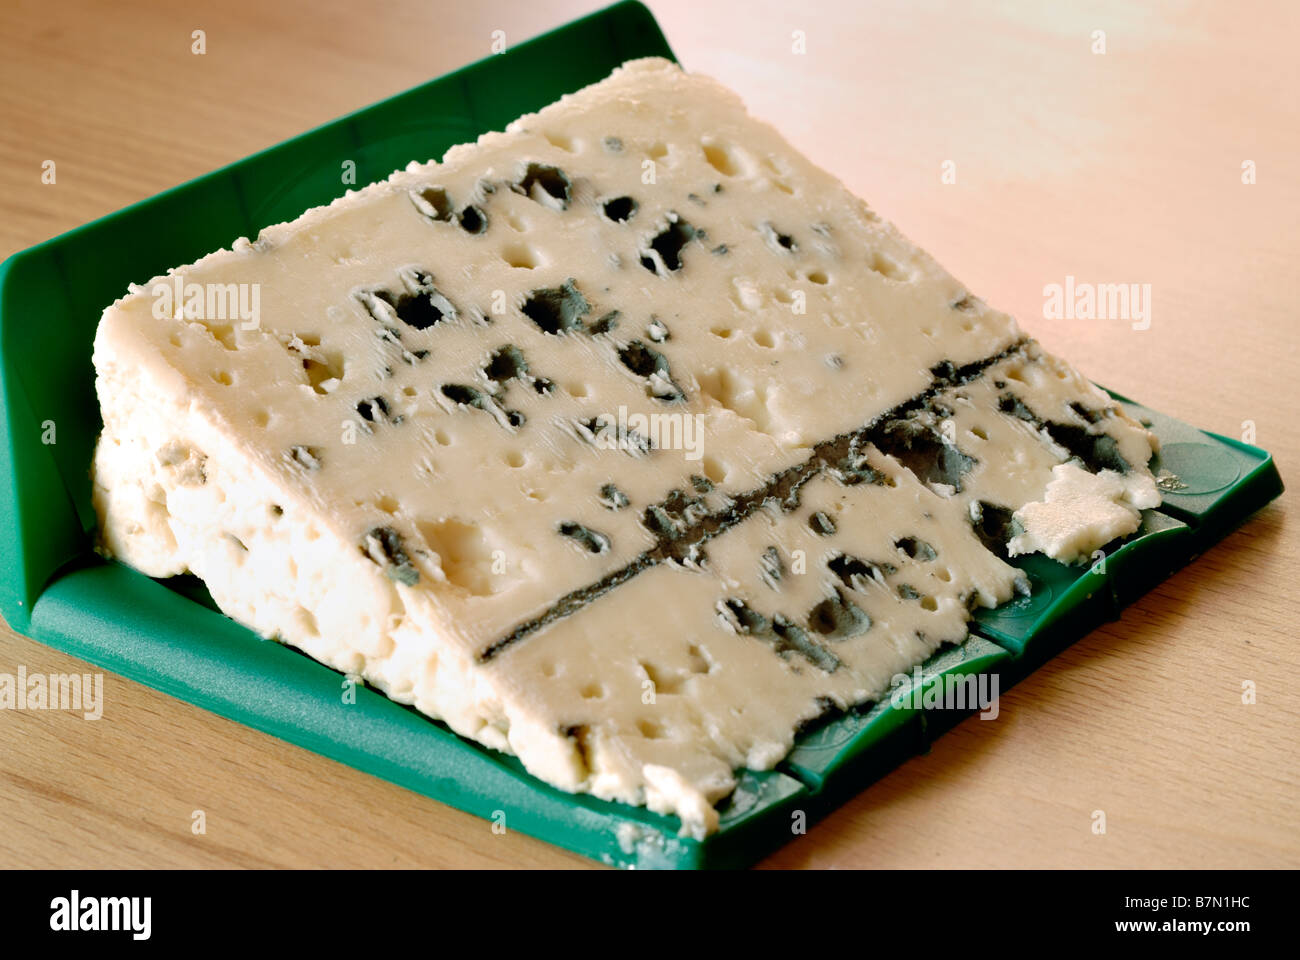 'French Food' 'French Cheese' Slice of Roquefort 'Blue Cheese' 'local food' - Stock Image